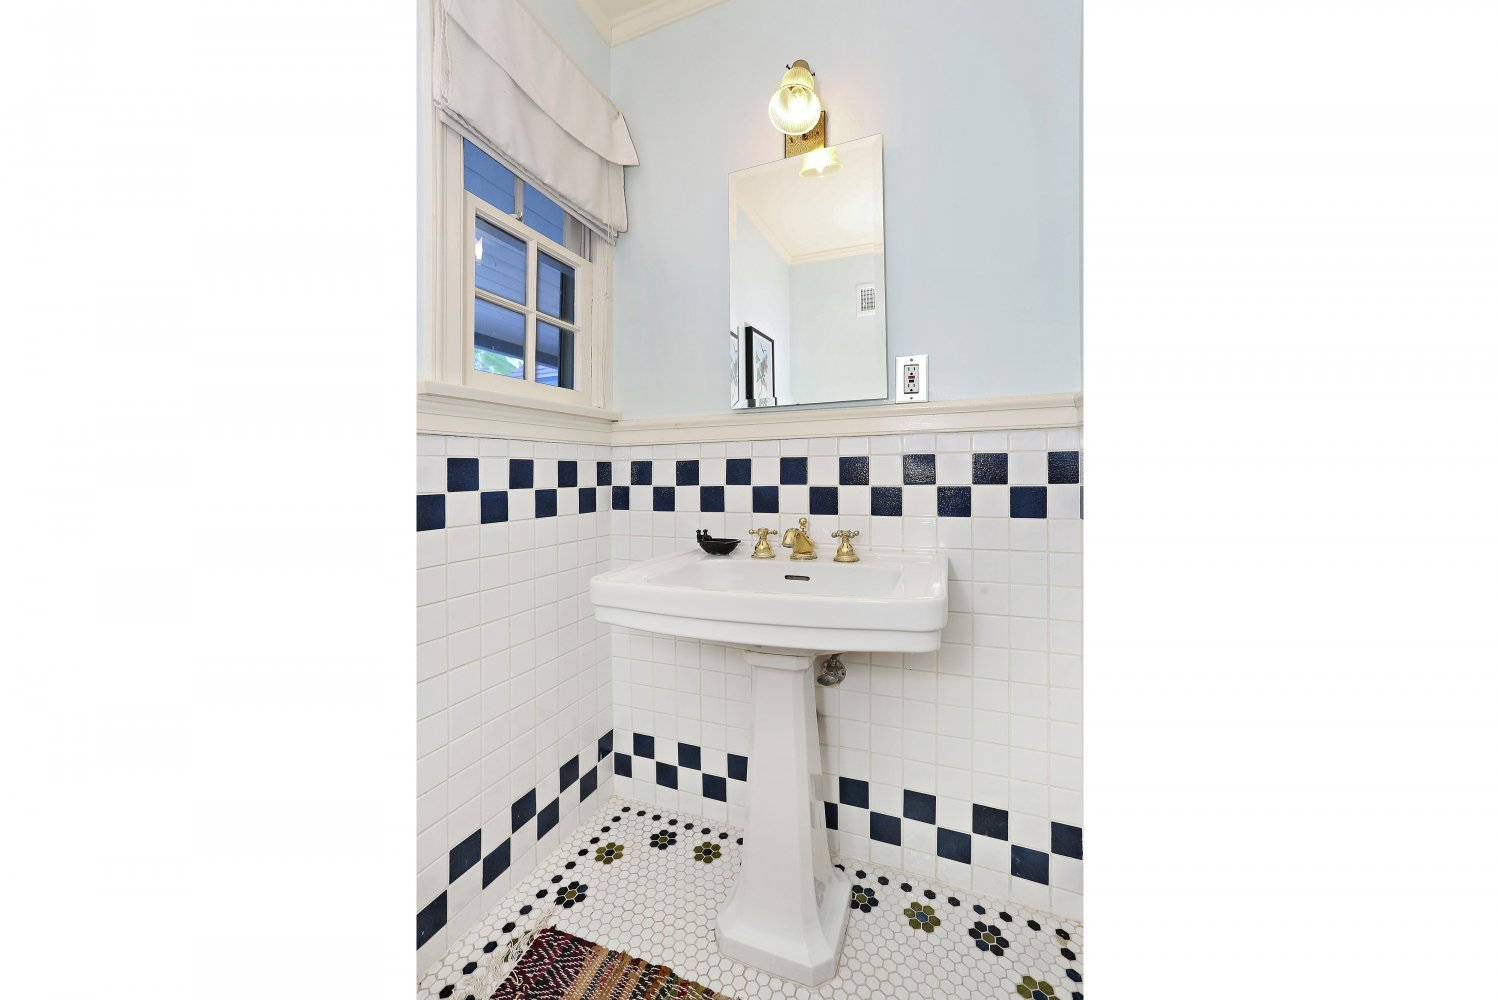 Pennsylvania Dutch Cottage Gerard Colford for sale. 2310 E Chevy Chase Dr. Glendale CA - Guest Bathroom